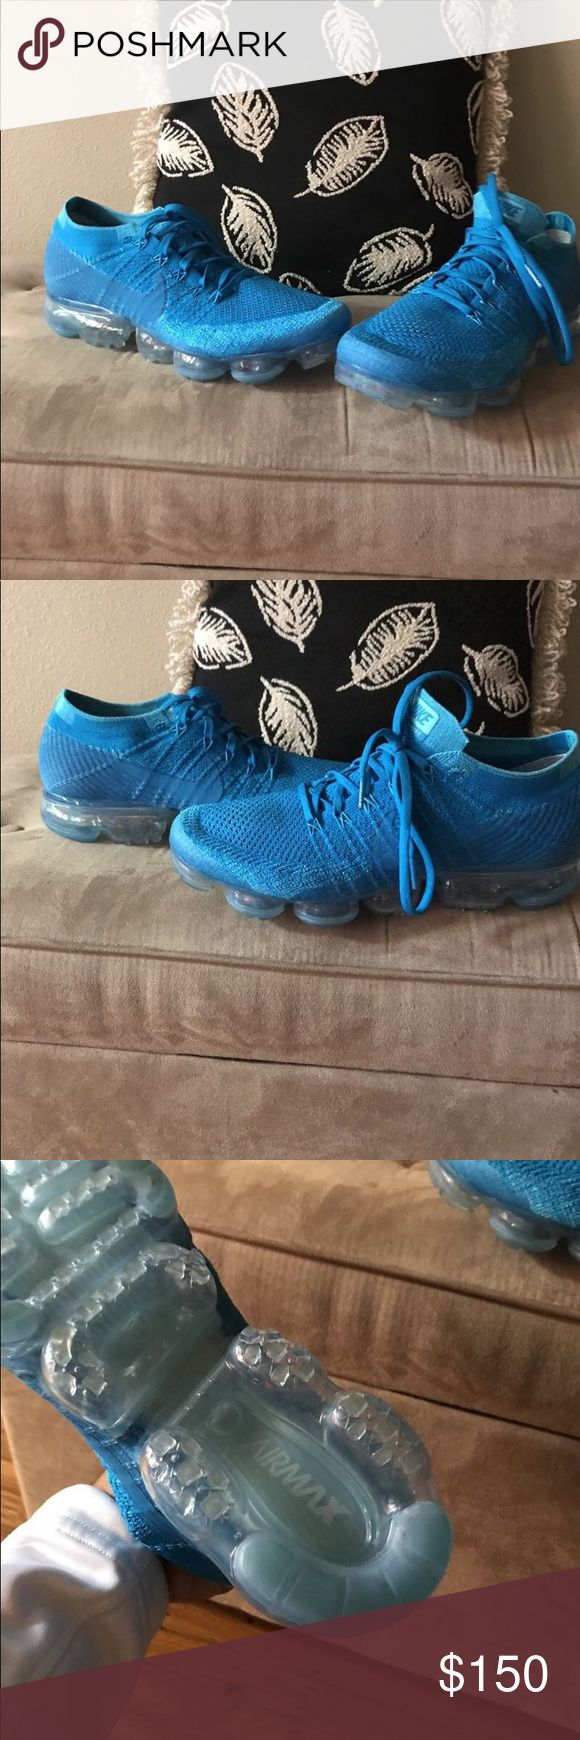 Nike vapor max orbit blue These are the Nike vapor max in the orbit blue colorway. These shoes really are like walking on a set of clouds !!! These shoes really are great for running and stylish enough for a night on the town. These shoes have been worn a few xs. They are in perfect shape and condition !!! They are 100 percent authentic and ready for a new home ... thanks for looking at my shoes. Please check out the rest of my shoes too , please and thank you!!! Nike Shoes Sneakers